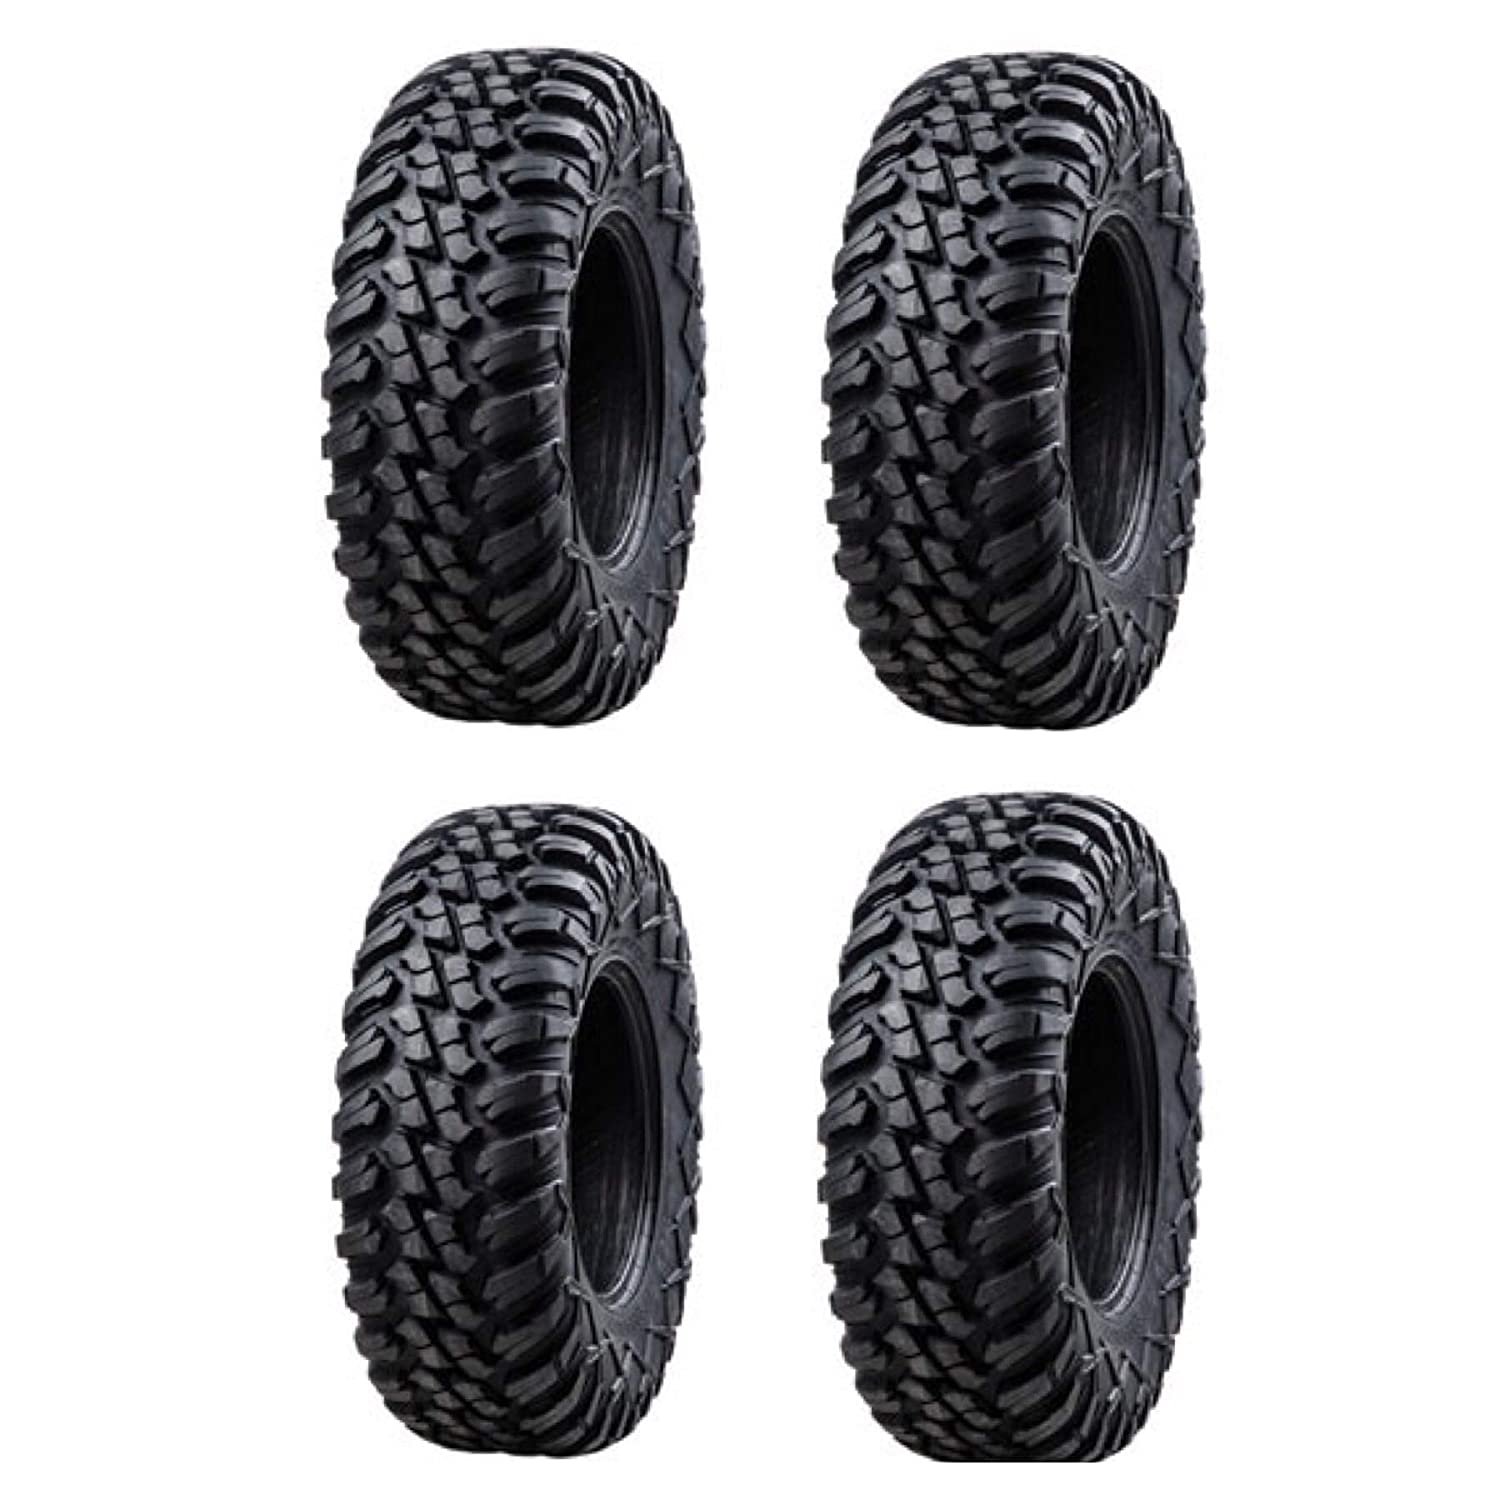 Bundle Four Tusk TERRABITE Heavy Duty 8-Ply DOT Radial UTV//ATV Tires Two 26x9-14 and Two 26x11-14